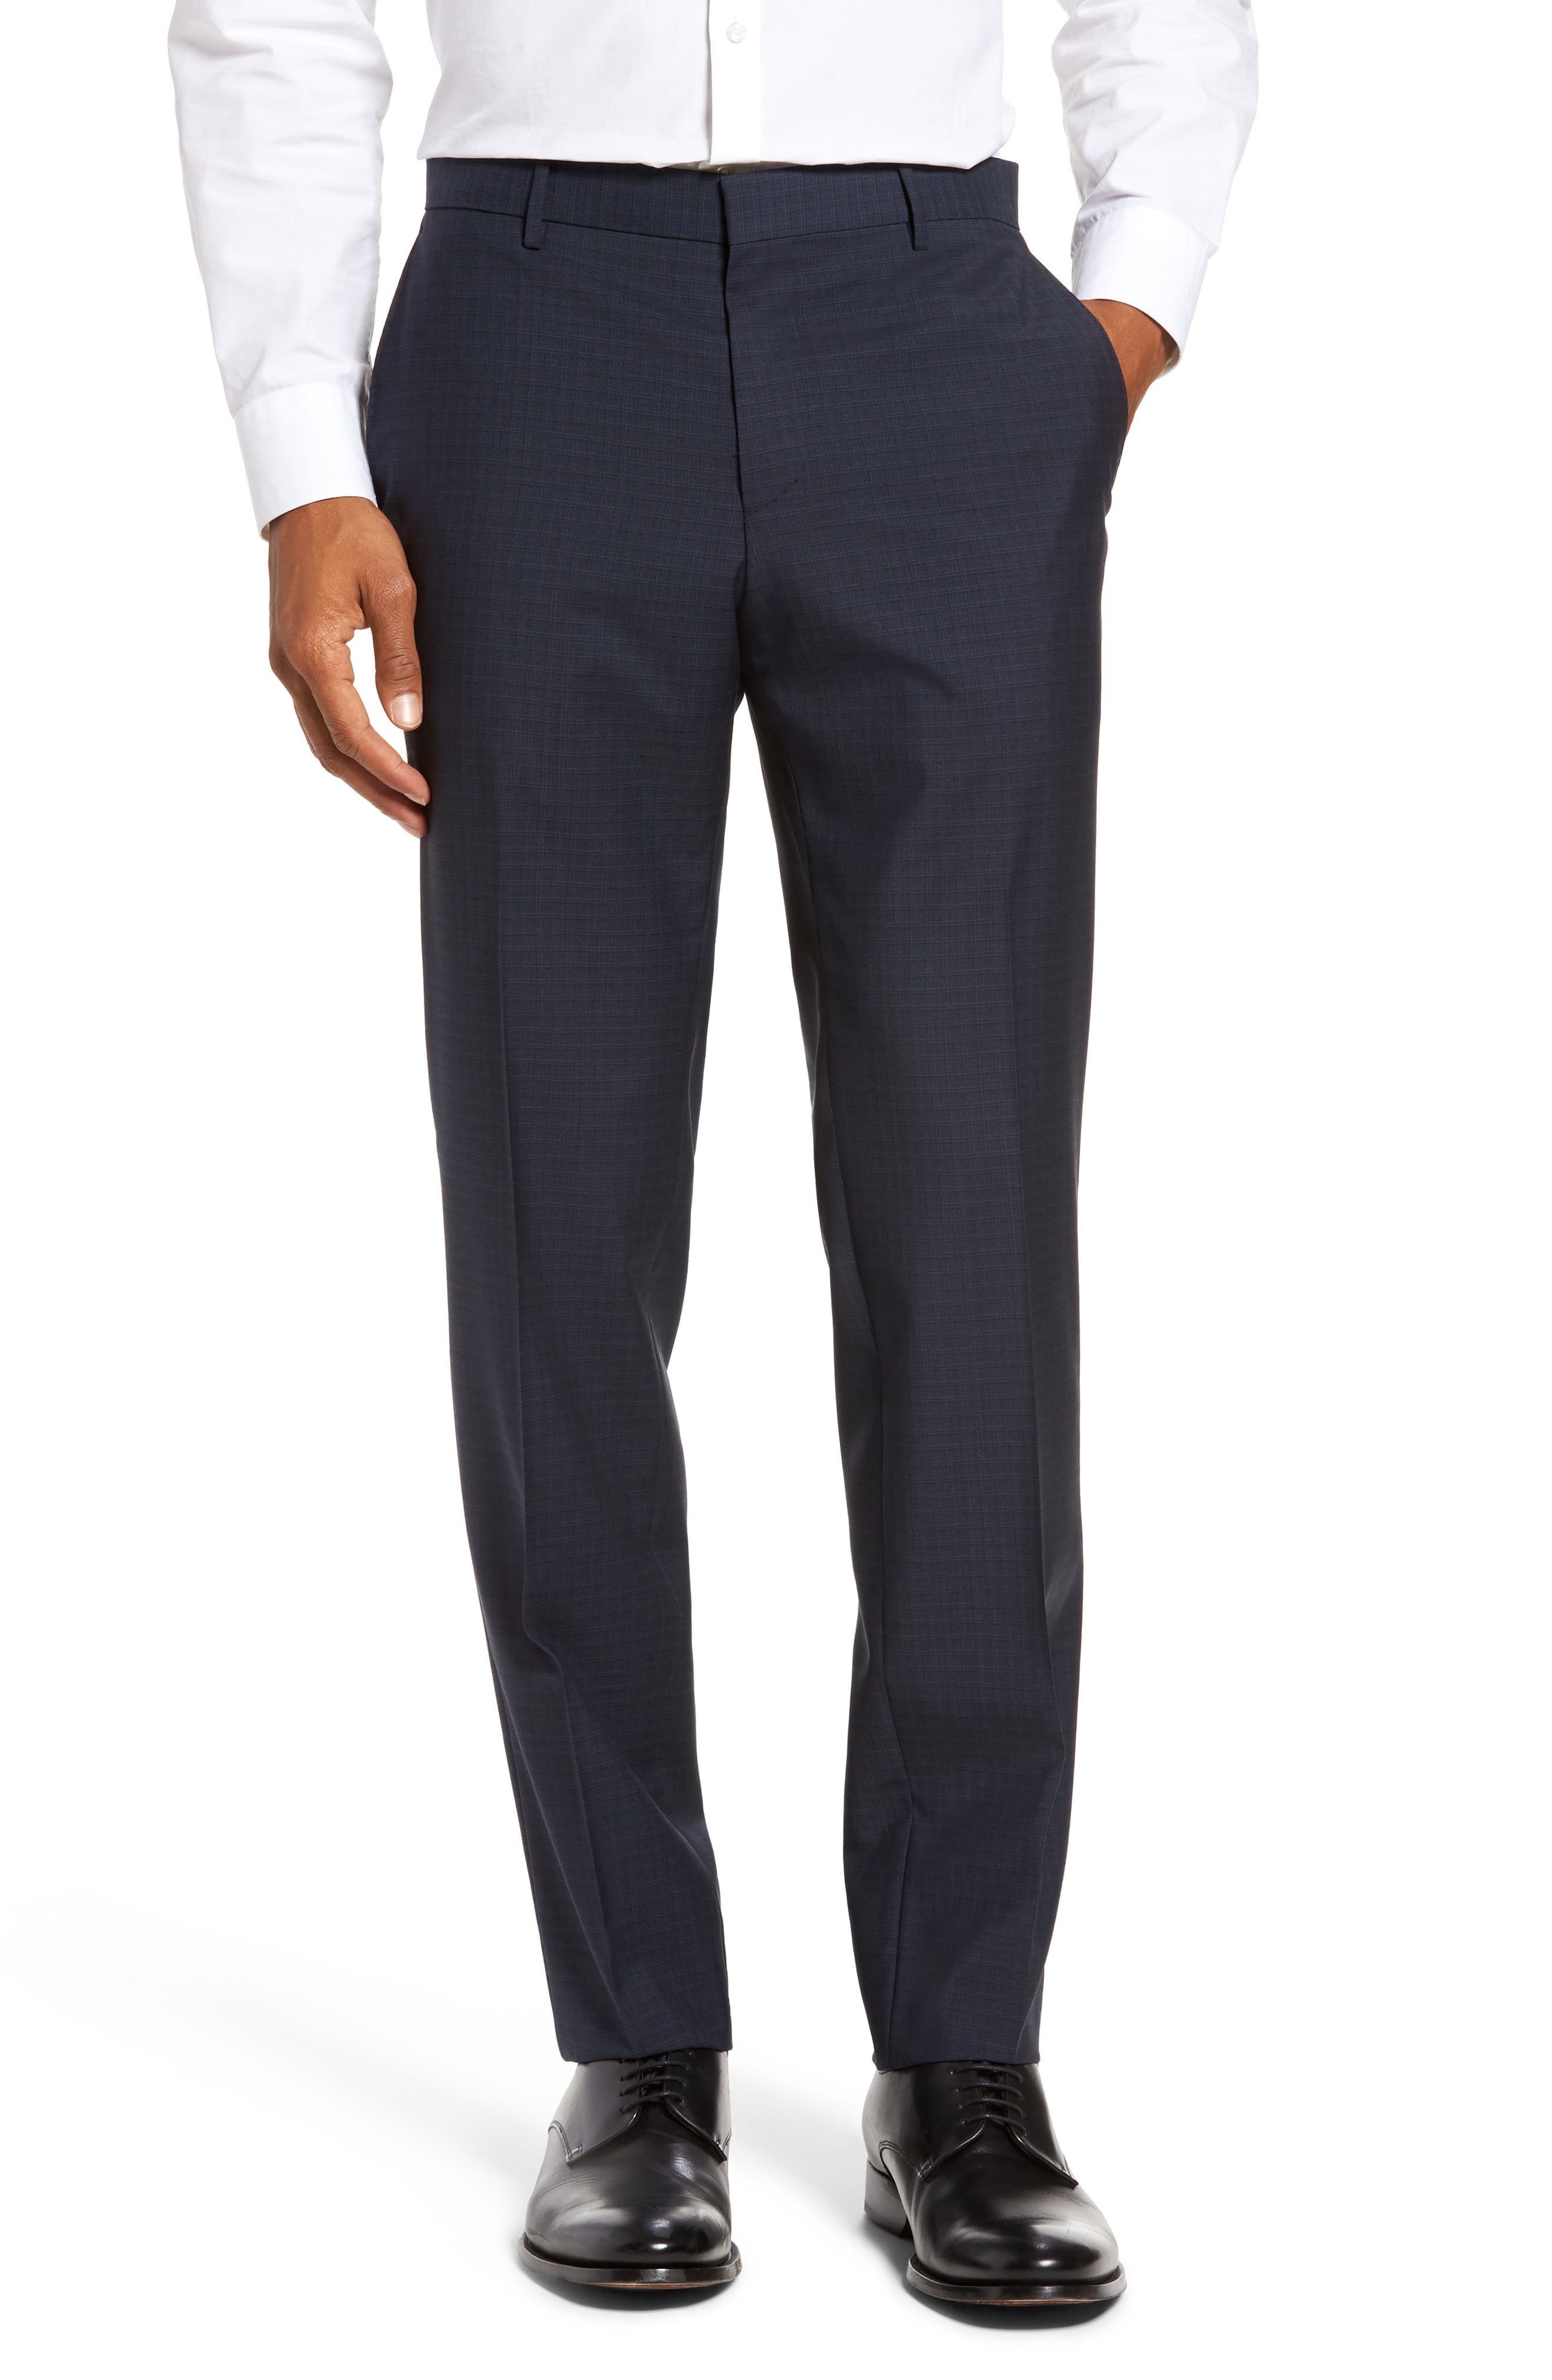 Benso Flat Front Check Wool Trousers,                         Main,                         color, Navy